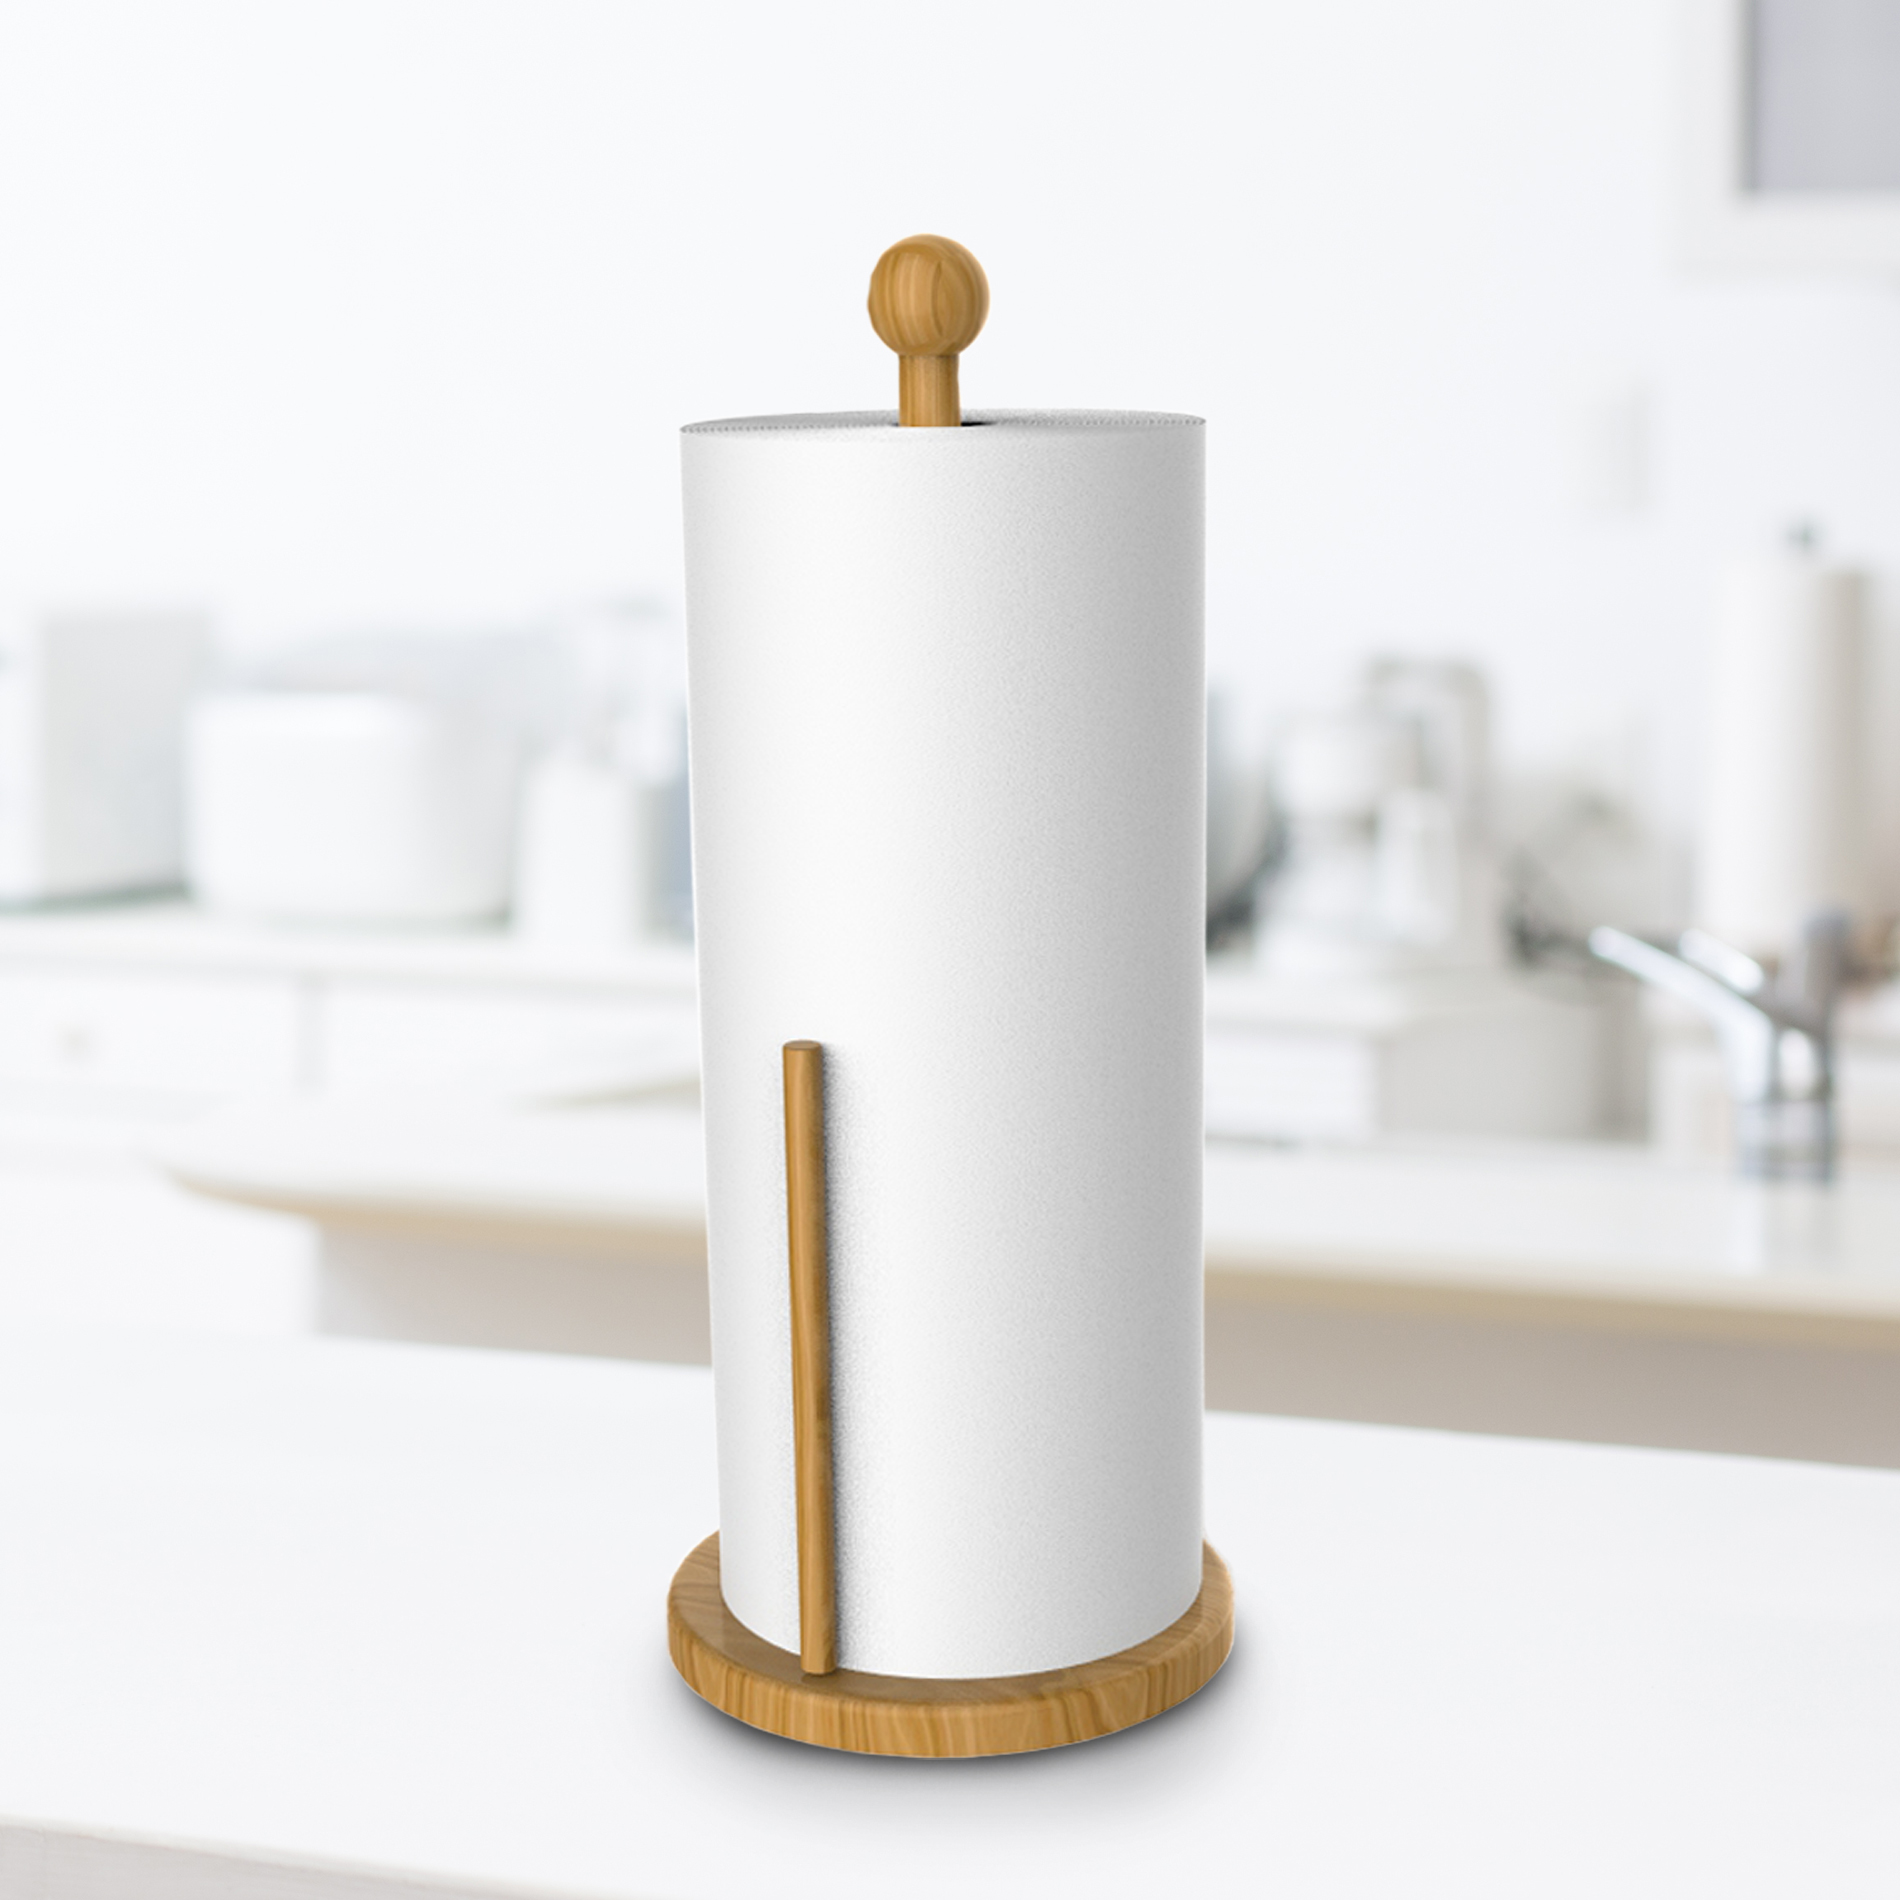 Paper Towel Holder Kmart Paper Towel Holder Shop Your Way Online Shopping And Earn